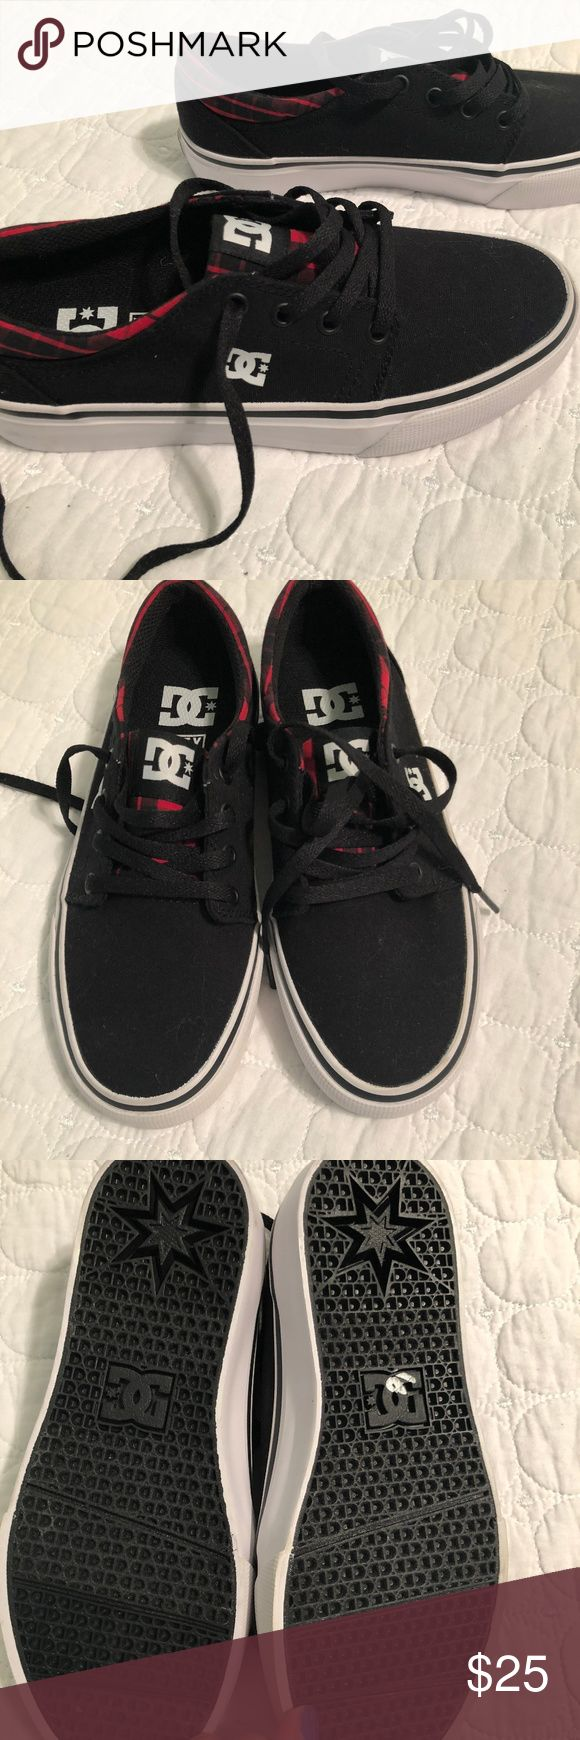 New without Box Boys DC Skate Shoes Brand new without box.  DC Skate shoes black with red plaid accents.  Size 5. DC Shoes Sneakers